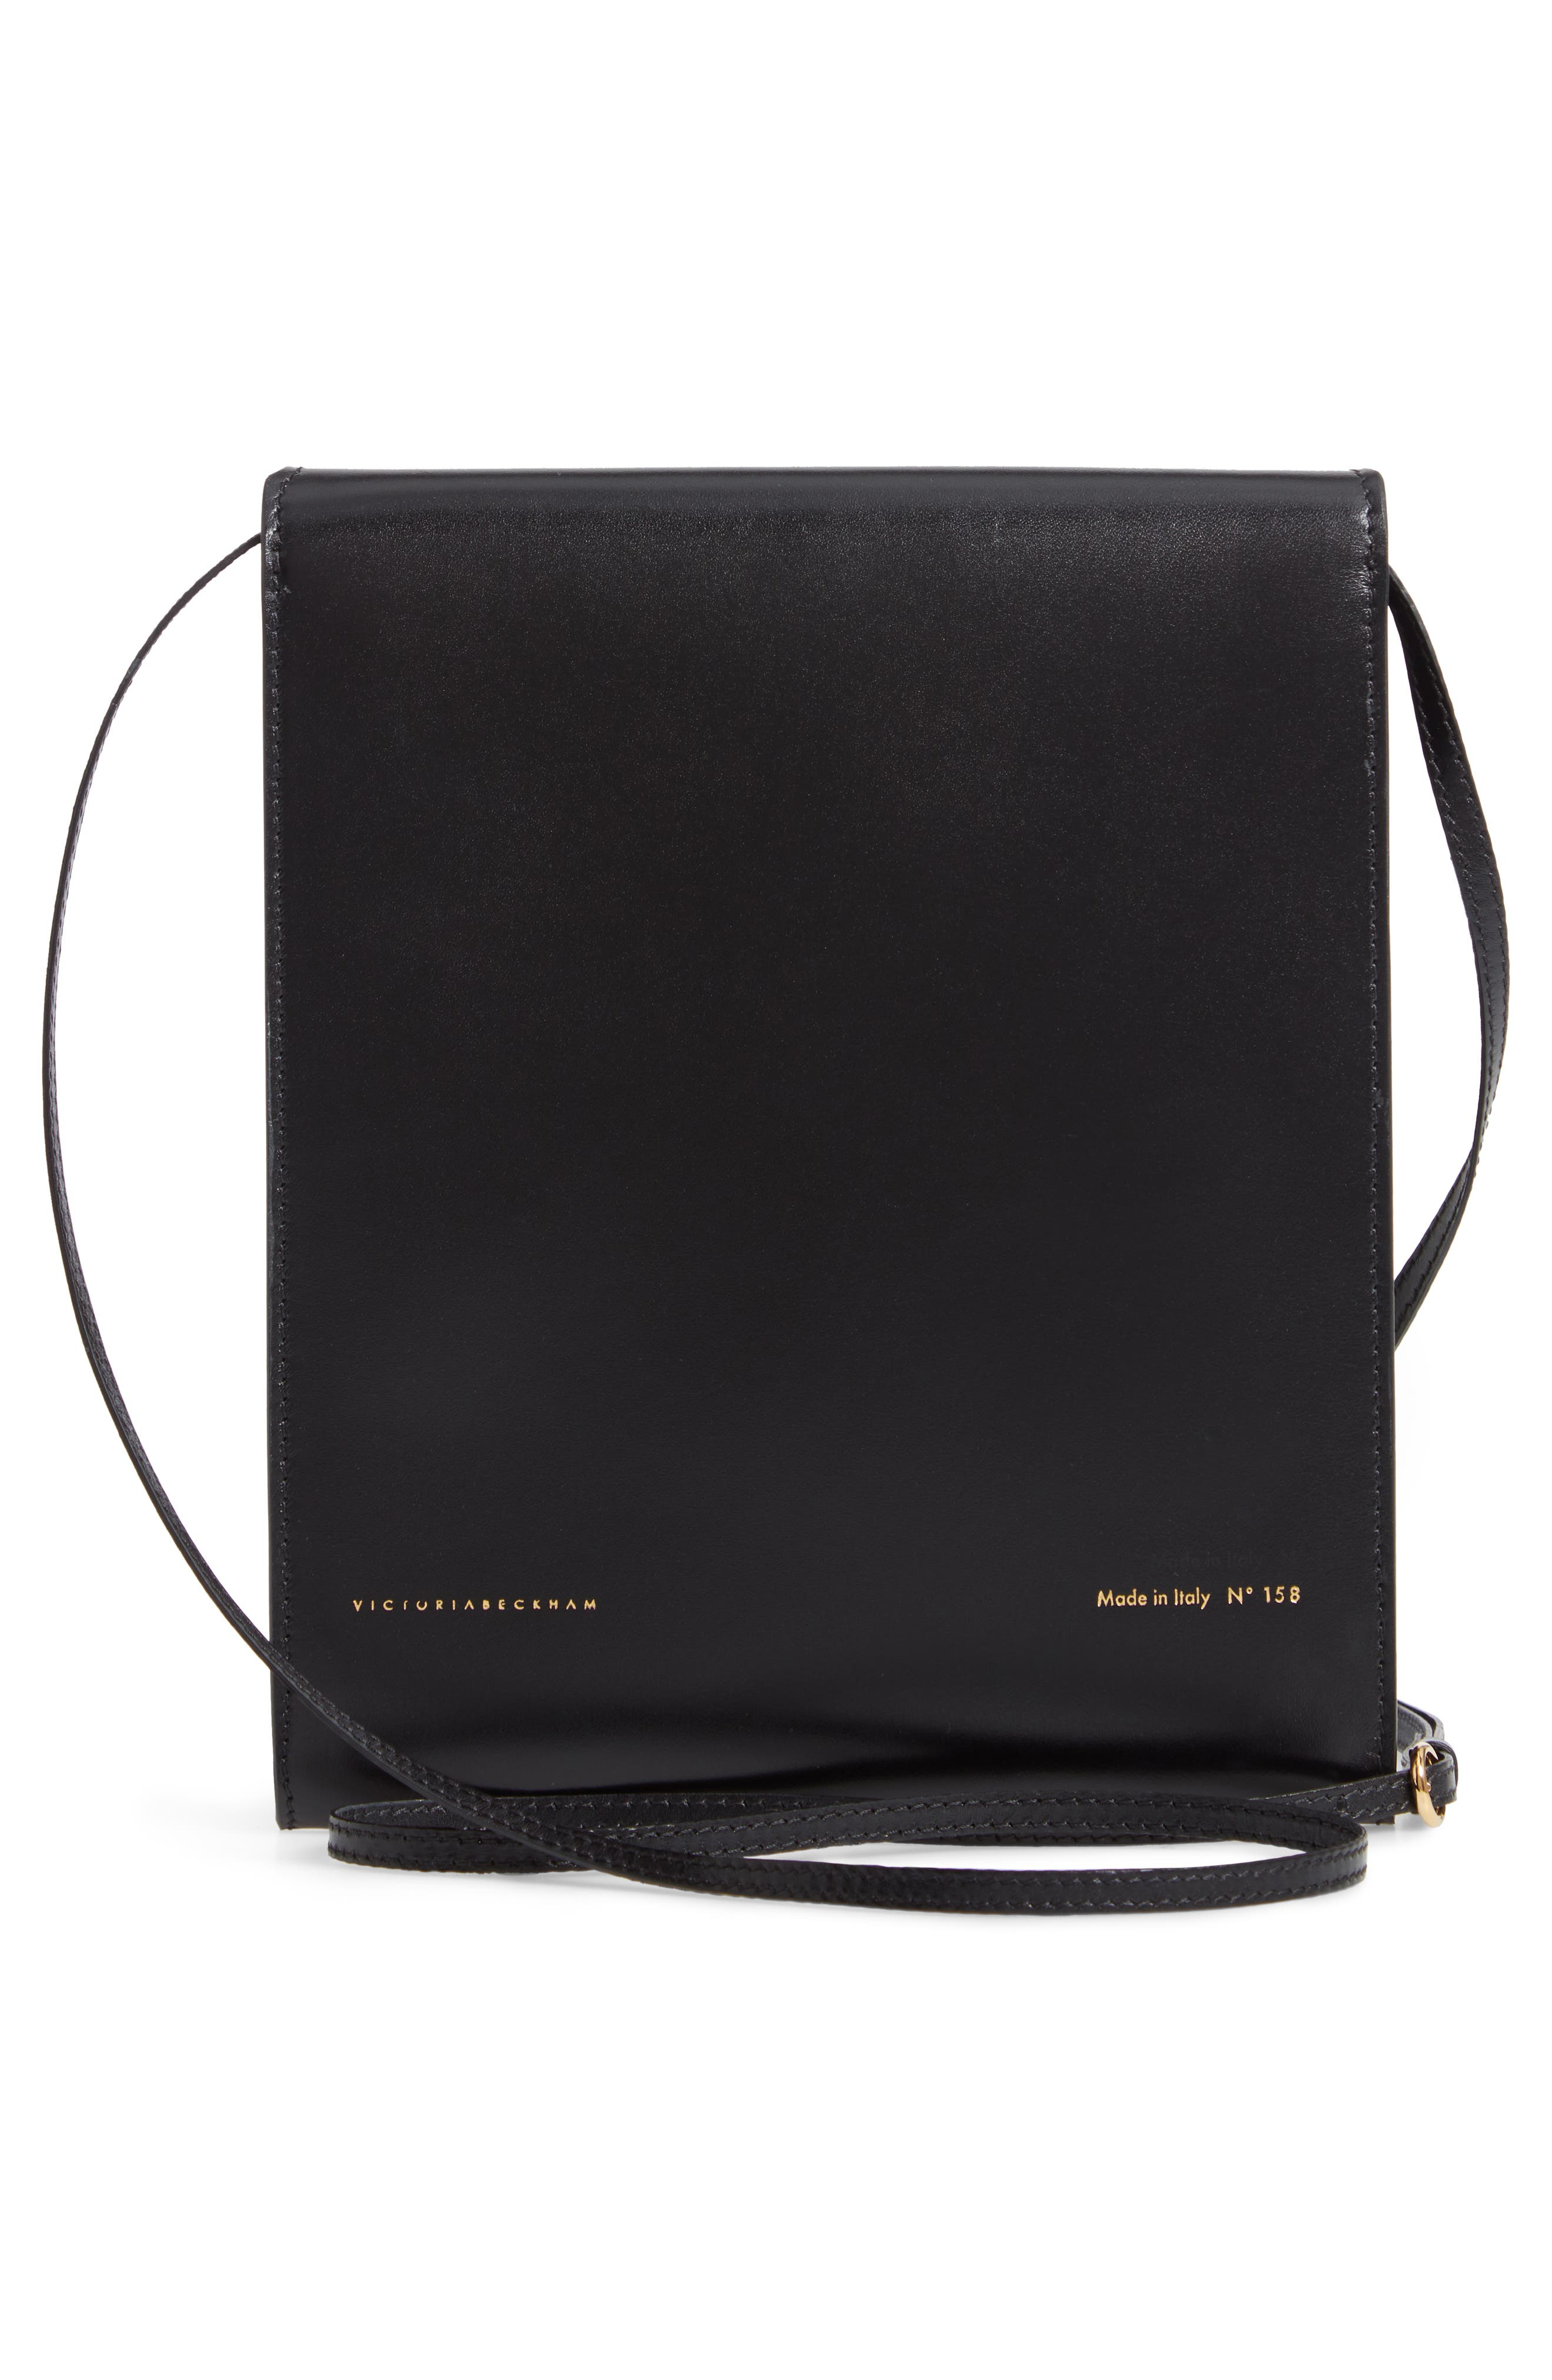 VICTORIA BECKHAM, Postino Leather Crossbody Bag, Alternate thumbnail 3, color, BLACK